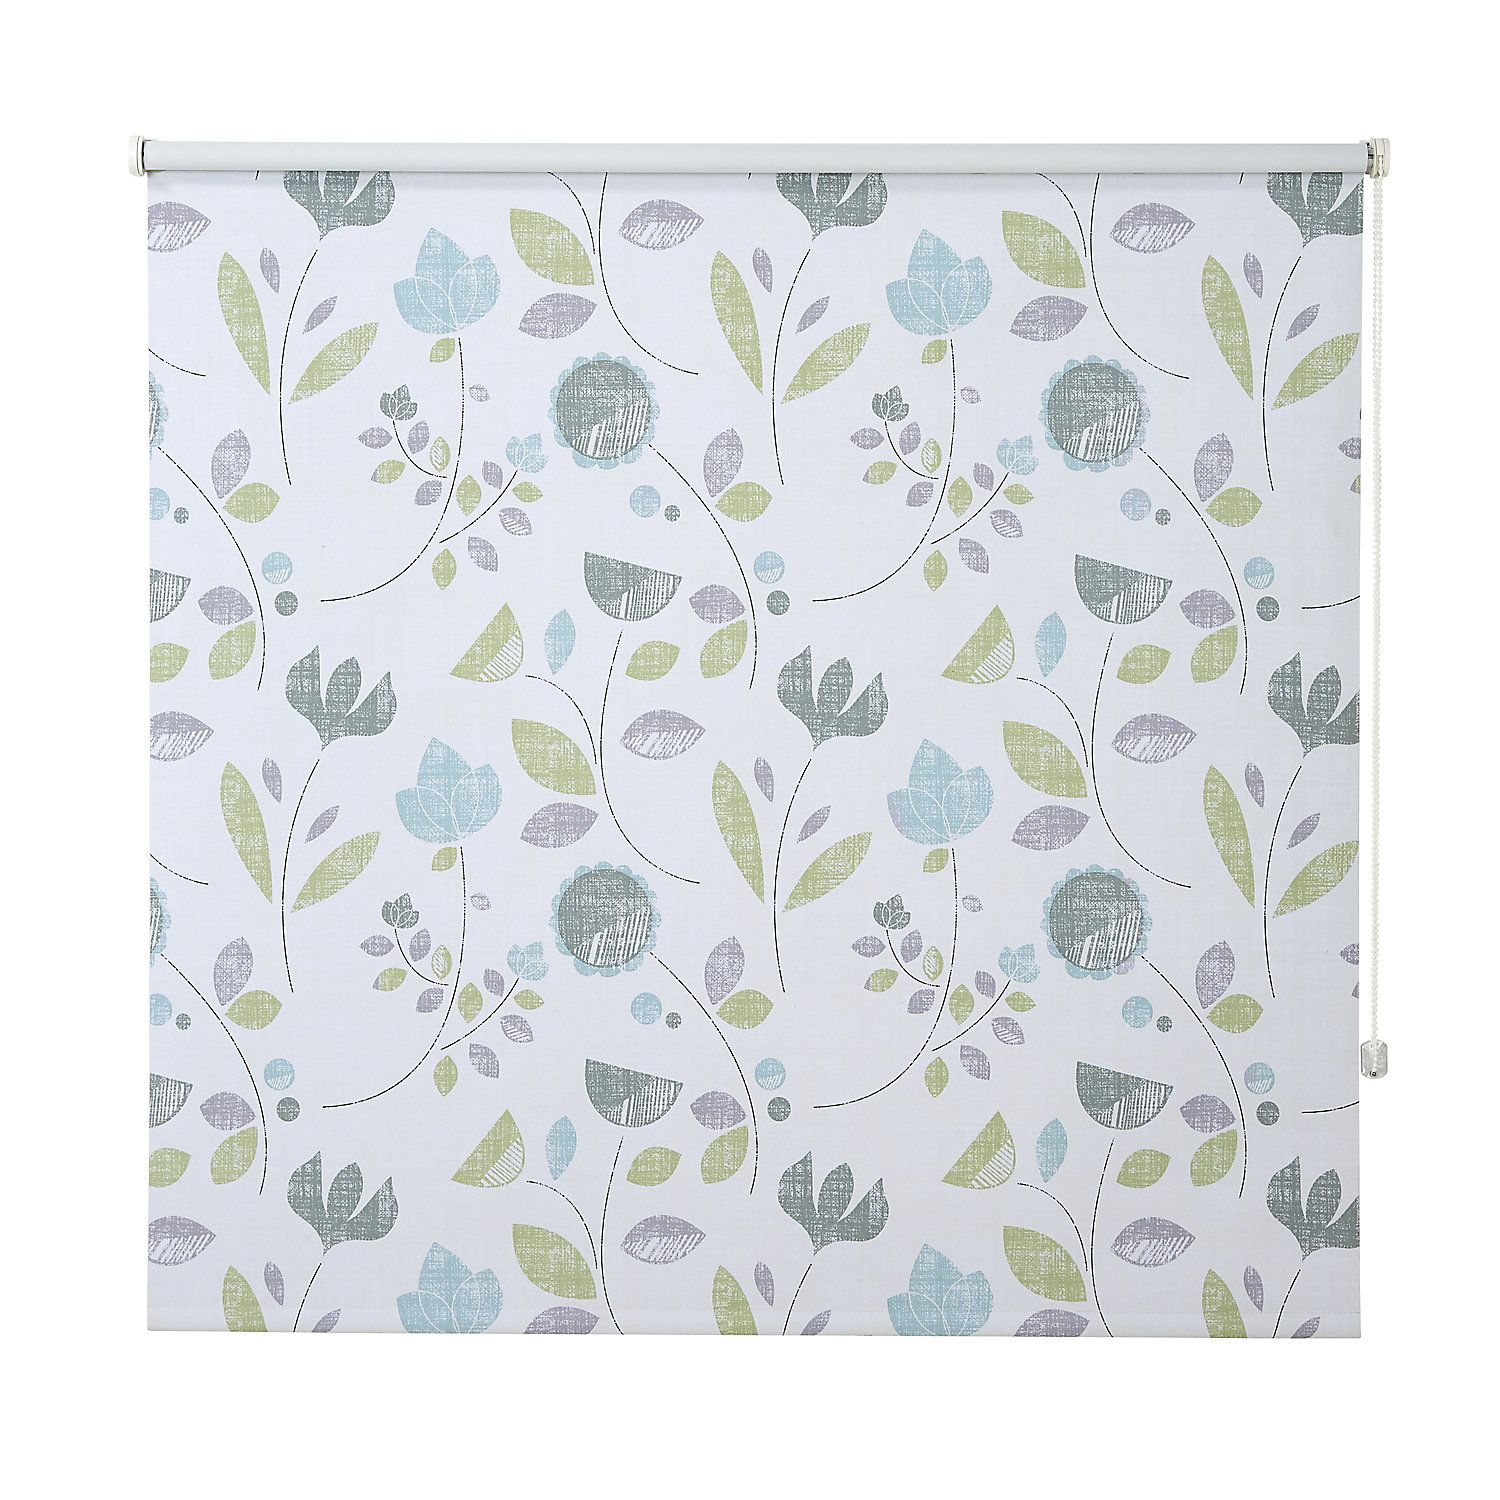 Colours Boreas Corded Green White Blackout Roller Blind L 195 Cm W 120 Cm Blackout Roller Blinds Roller Blinds Blinds